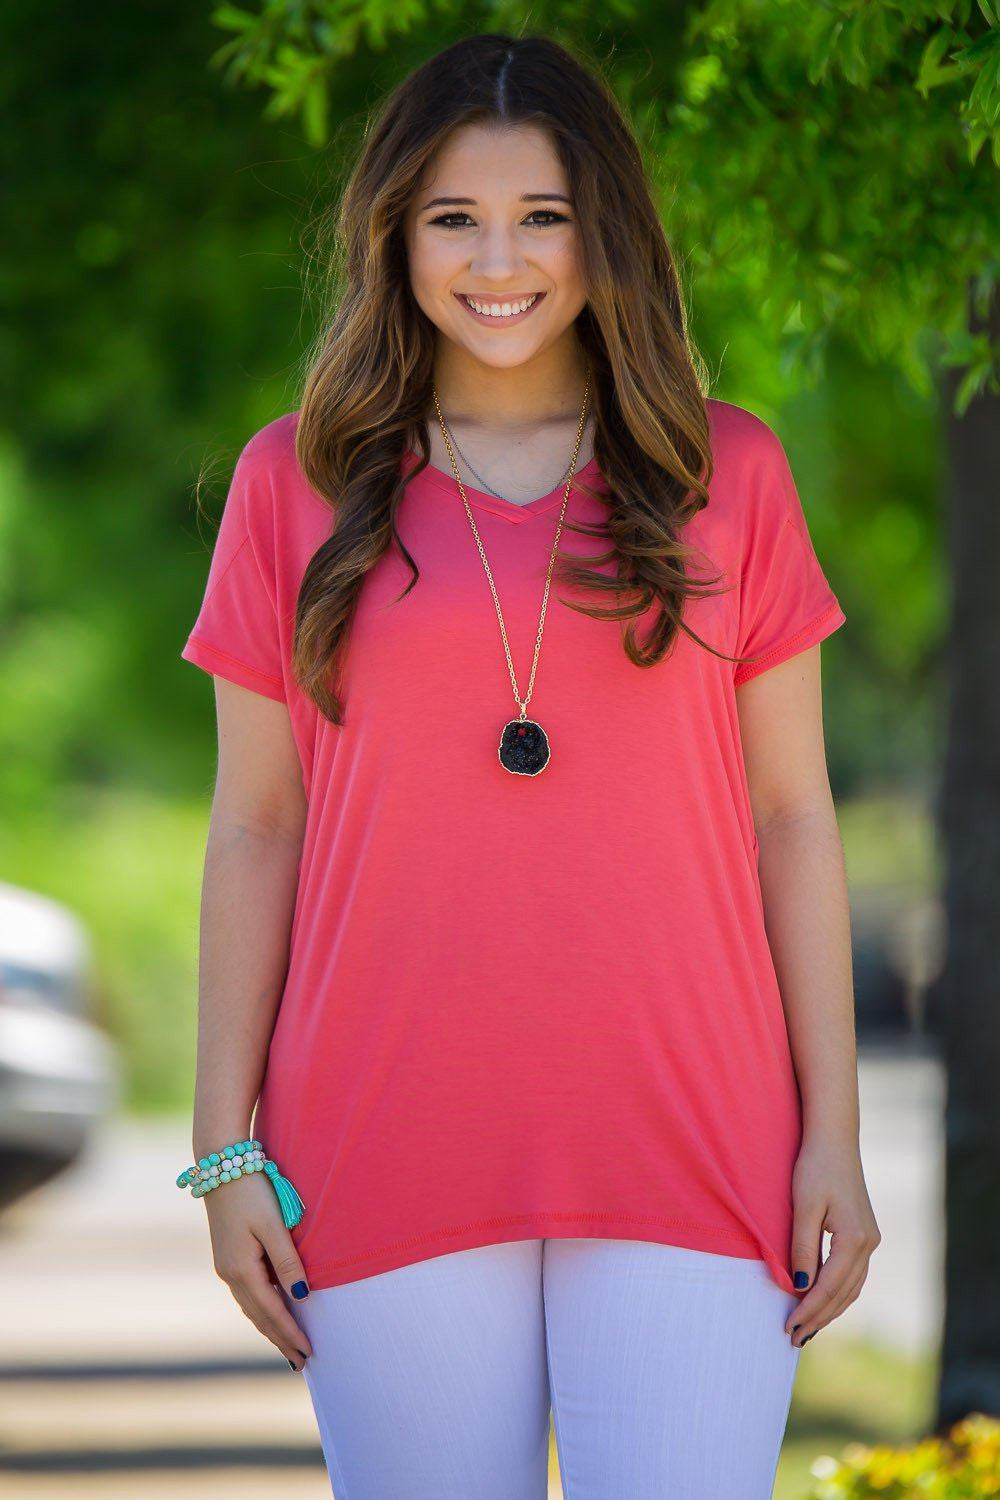 Short Sleeve Rolled Sleeve V-Neck Piko Top - Coral - Piko Clothing - 1